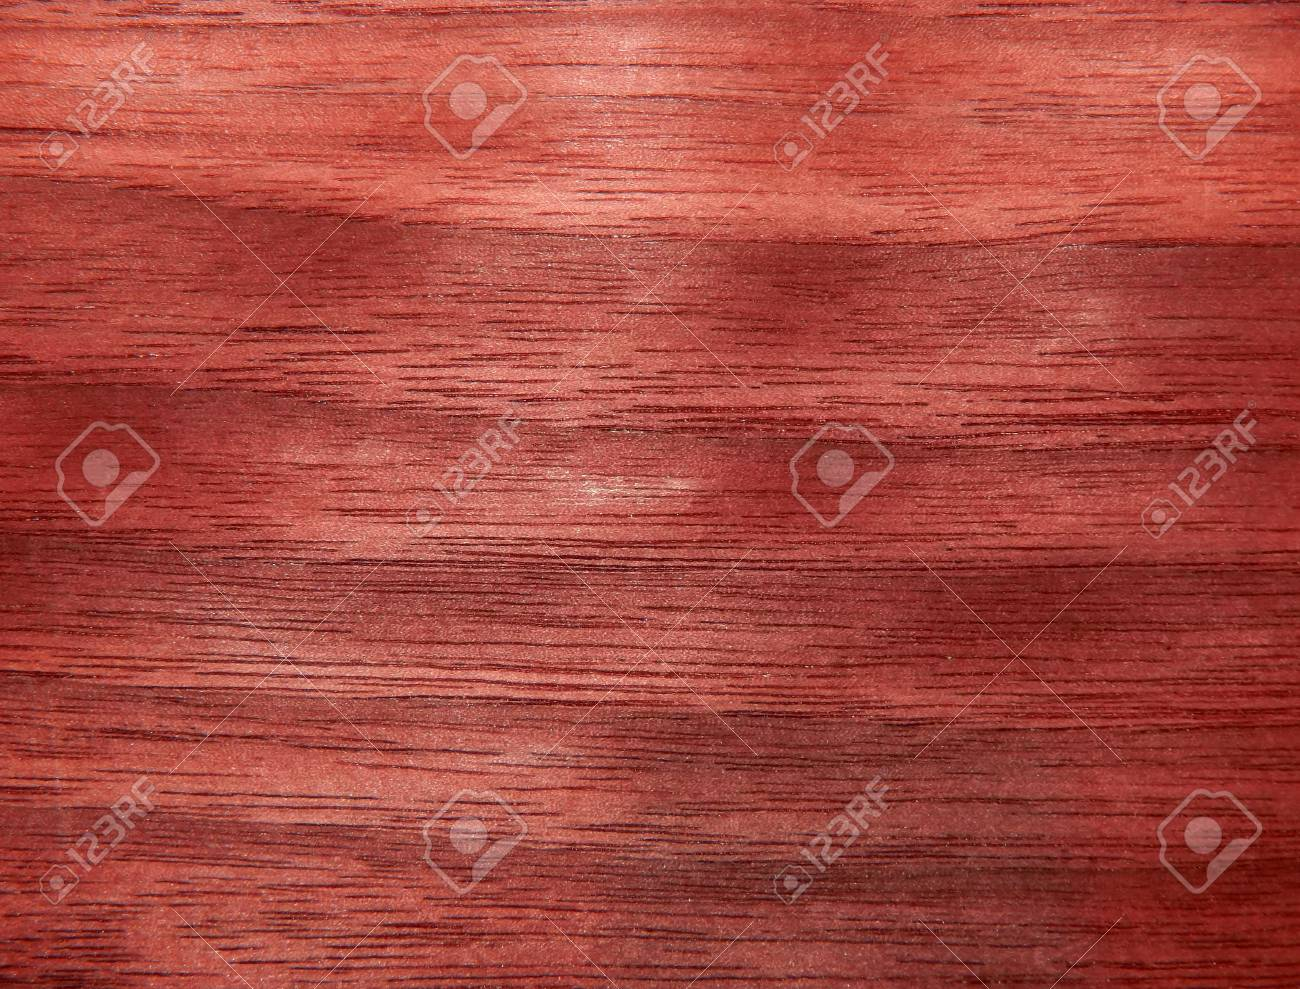 Texture Of A Wooden Surface Of Mahogany Wood Veneer For Furniture